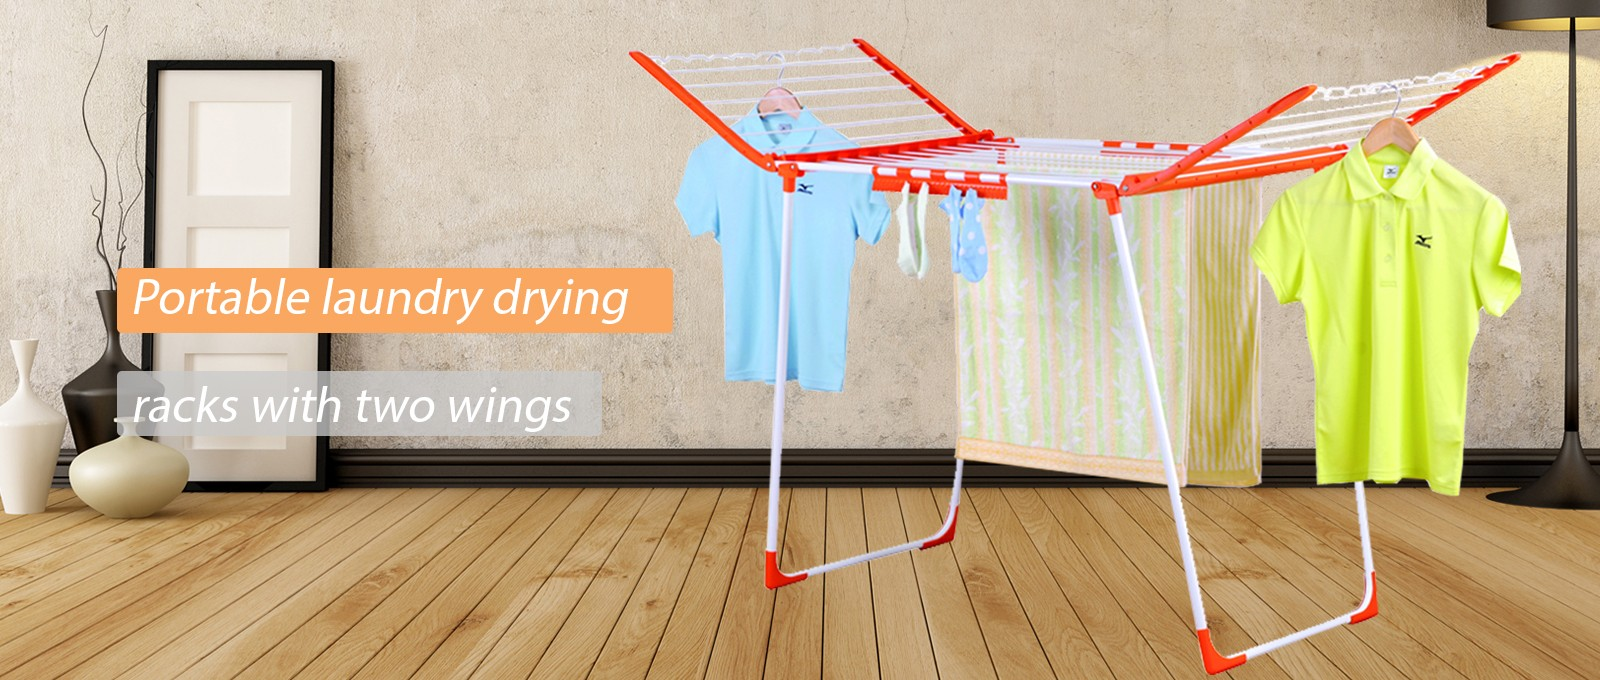 Portable laundry drying racks with two wings